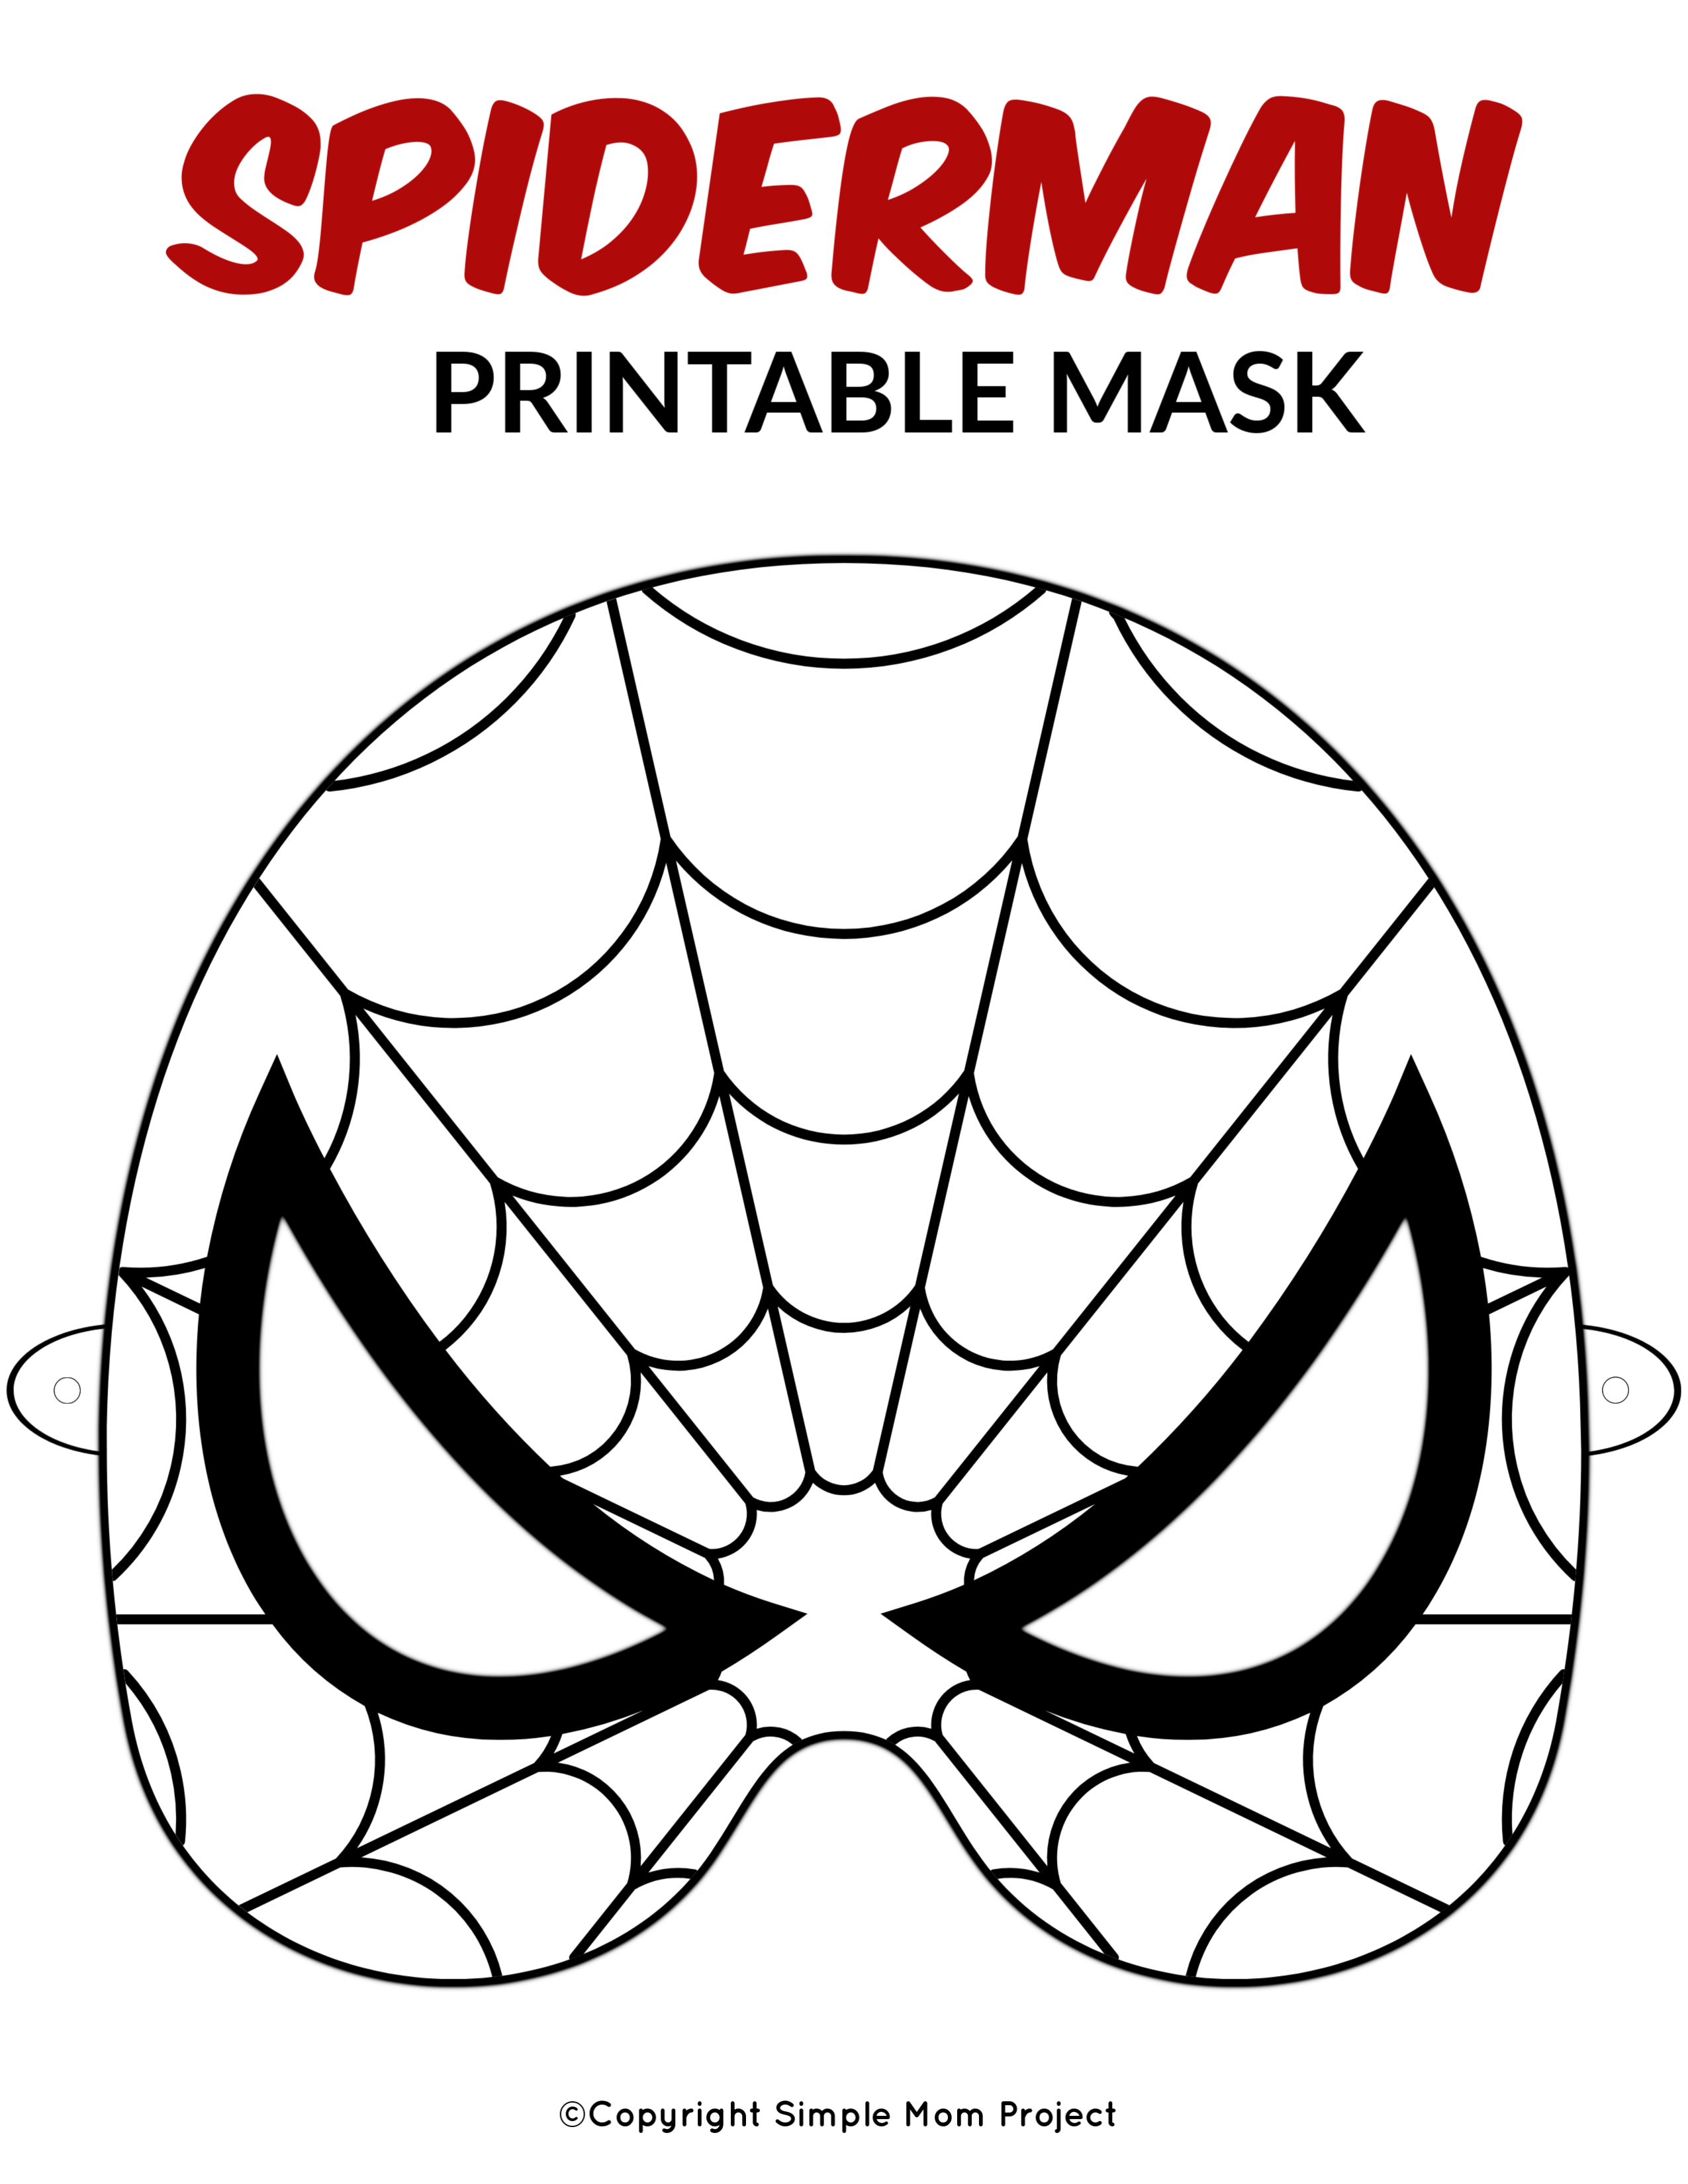 Free Printable Superhero Face Masks For Kids - Simple Mom Project - Free Printable Masks